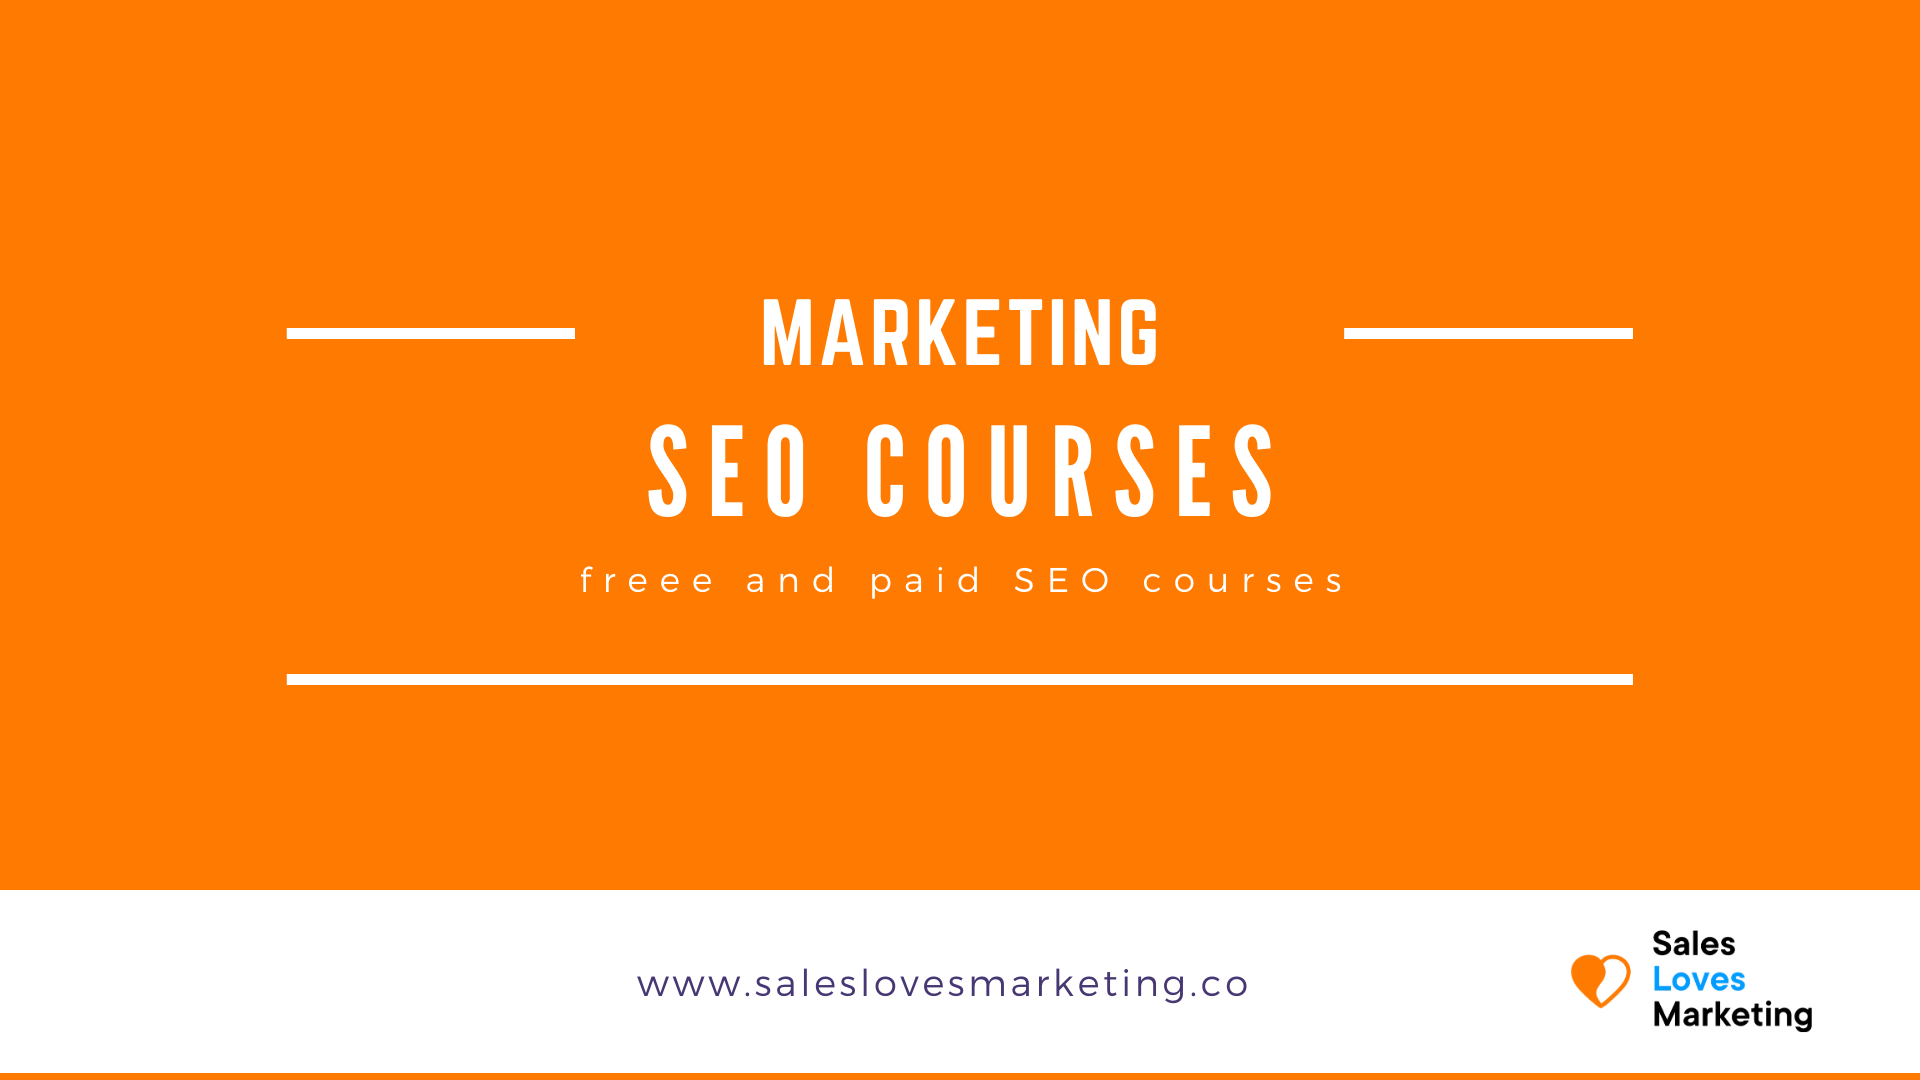 free and paid seo courses to grow your organic website visitors